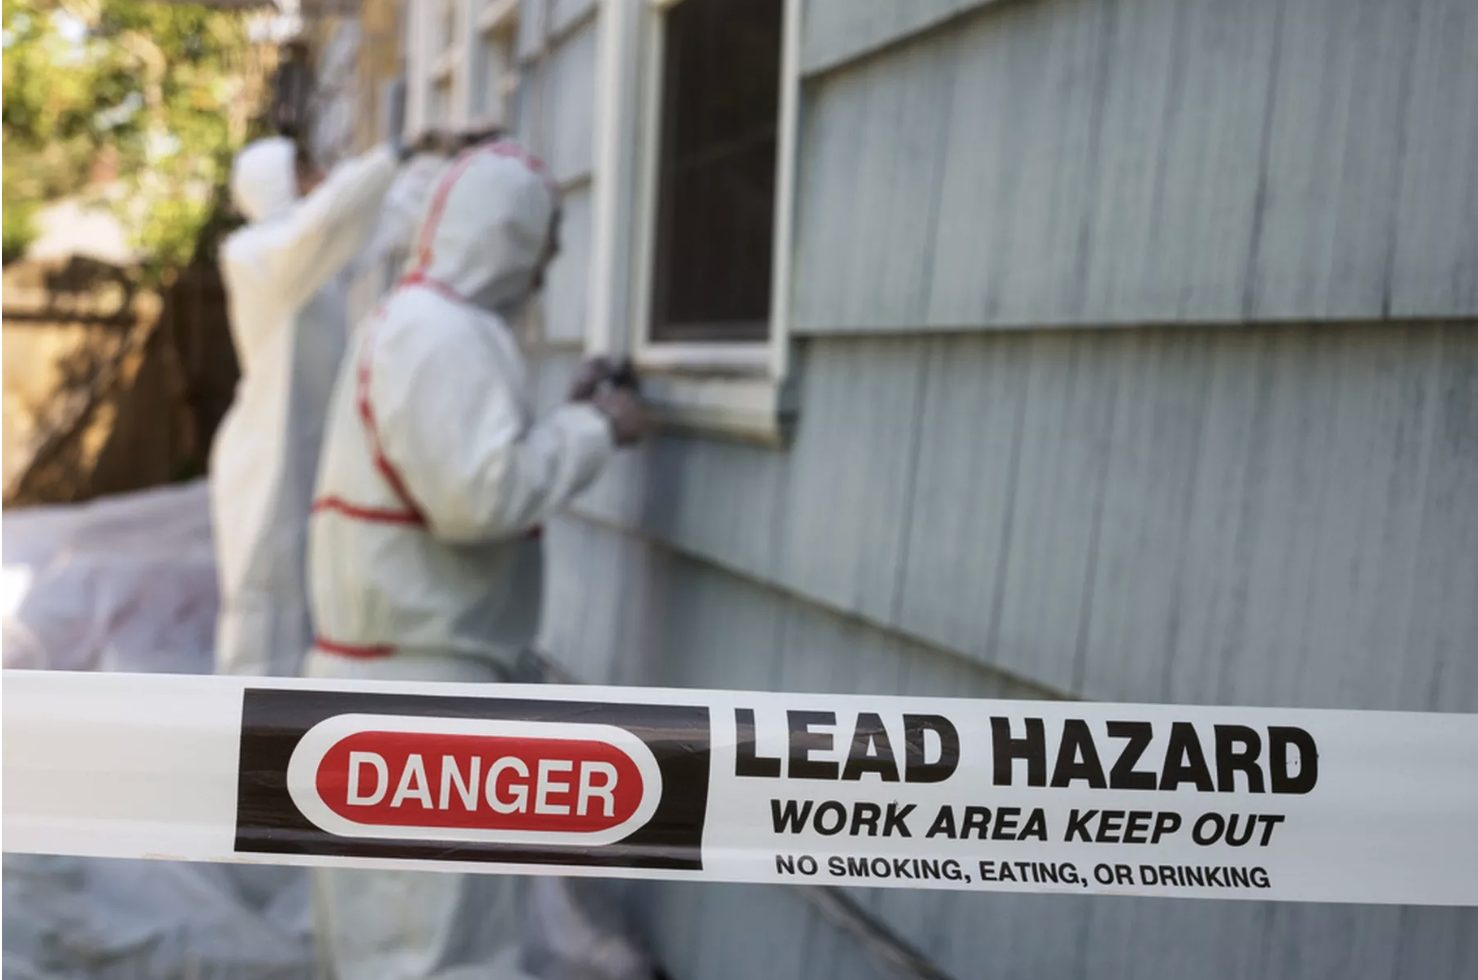 can siding contractors remove lead based paint vancouver wa